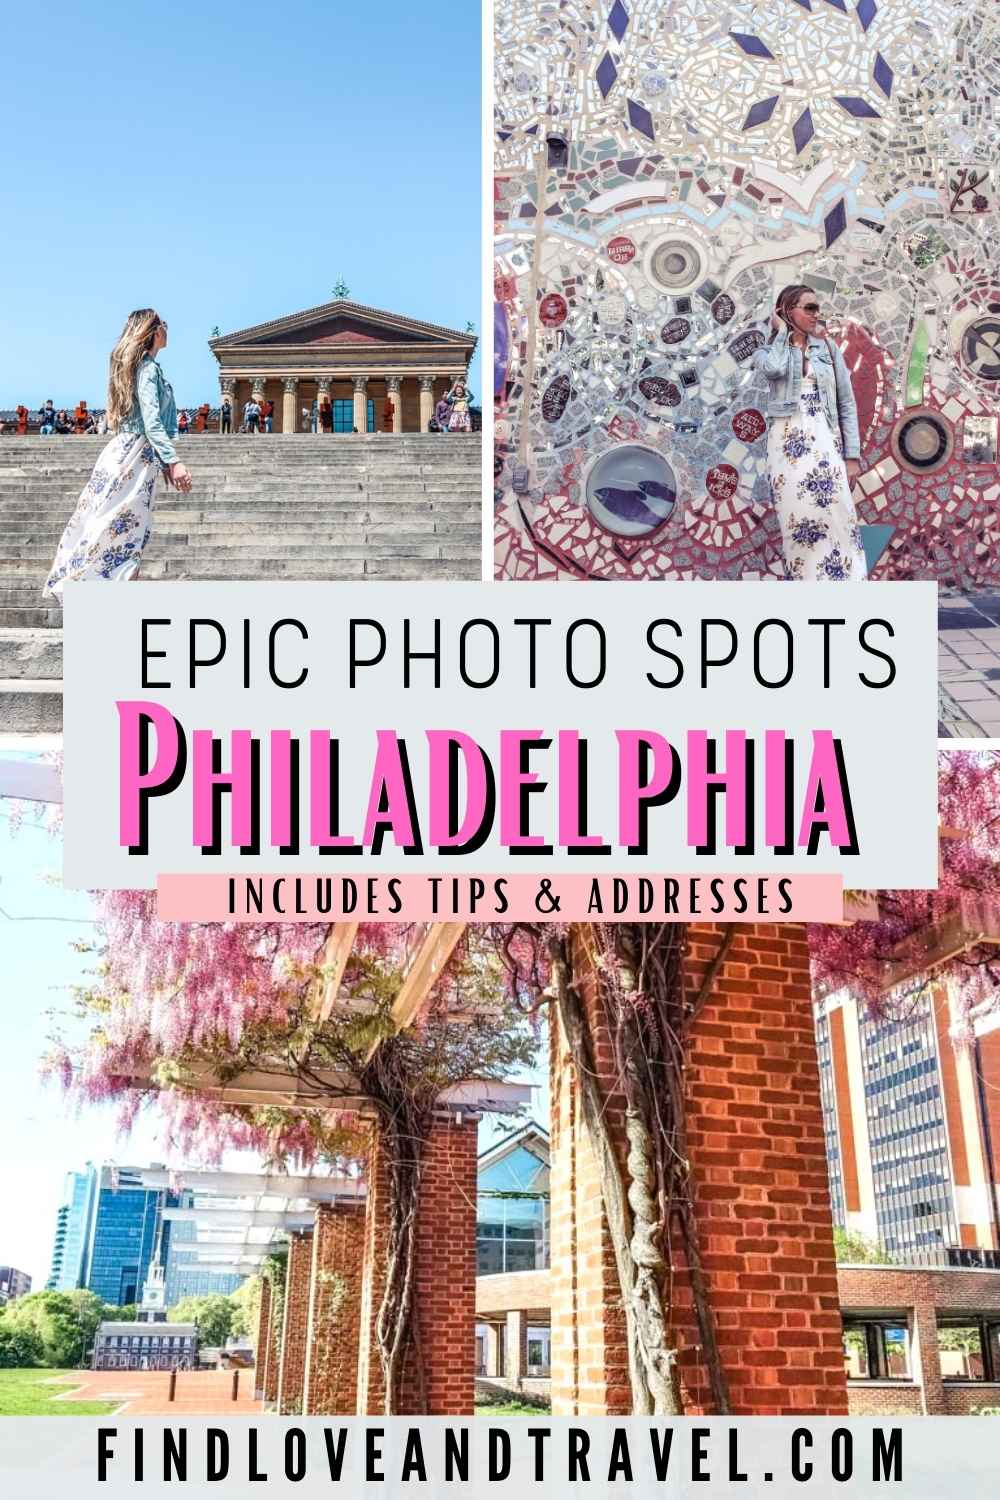 instagrammable places in philly